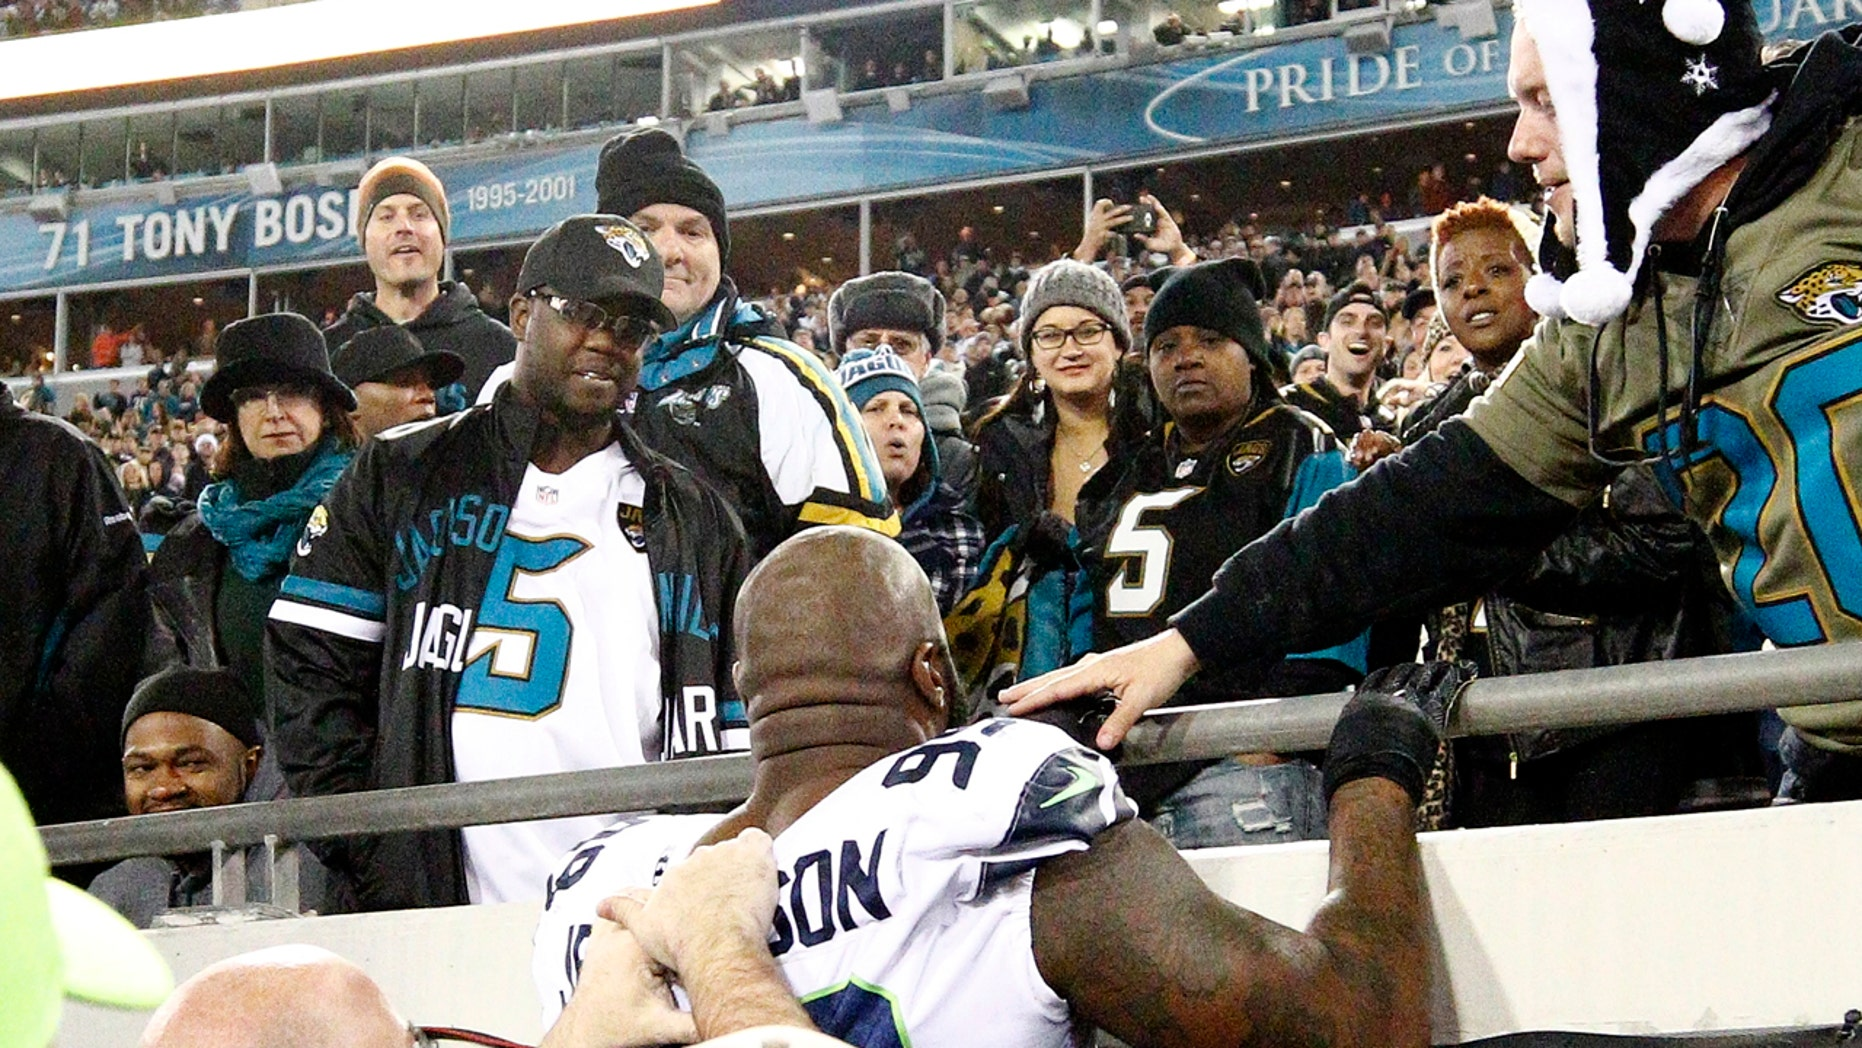 Dec. 10: Seattle Seahawks defensive tackle Quinton Jefferson tries to climb up in the stands after a fan threw an object in his direction.